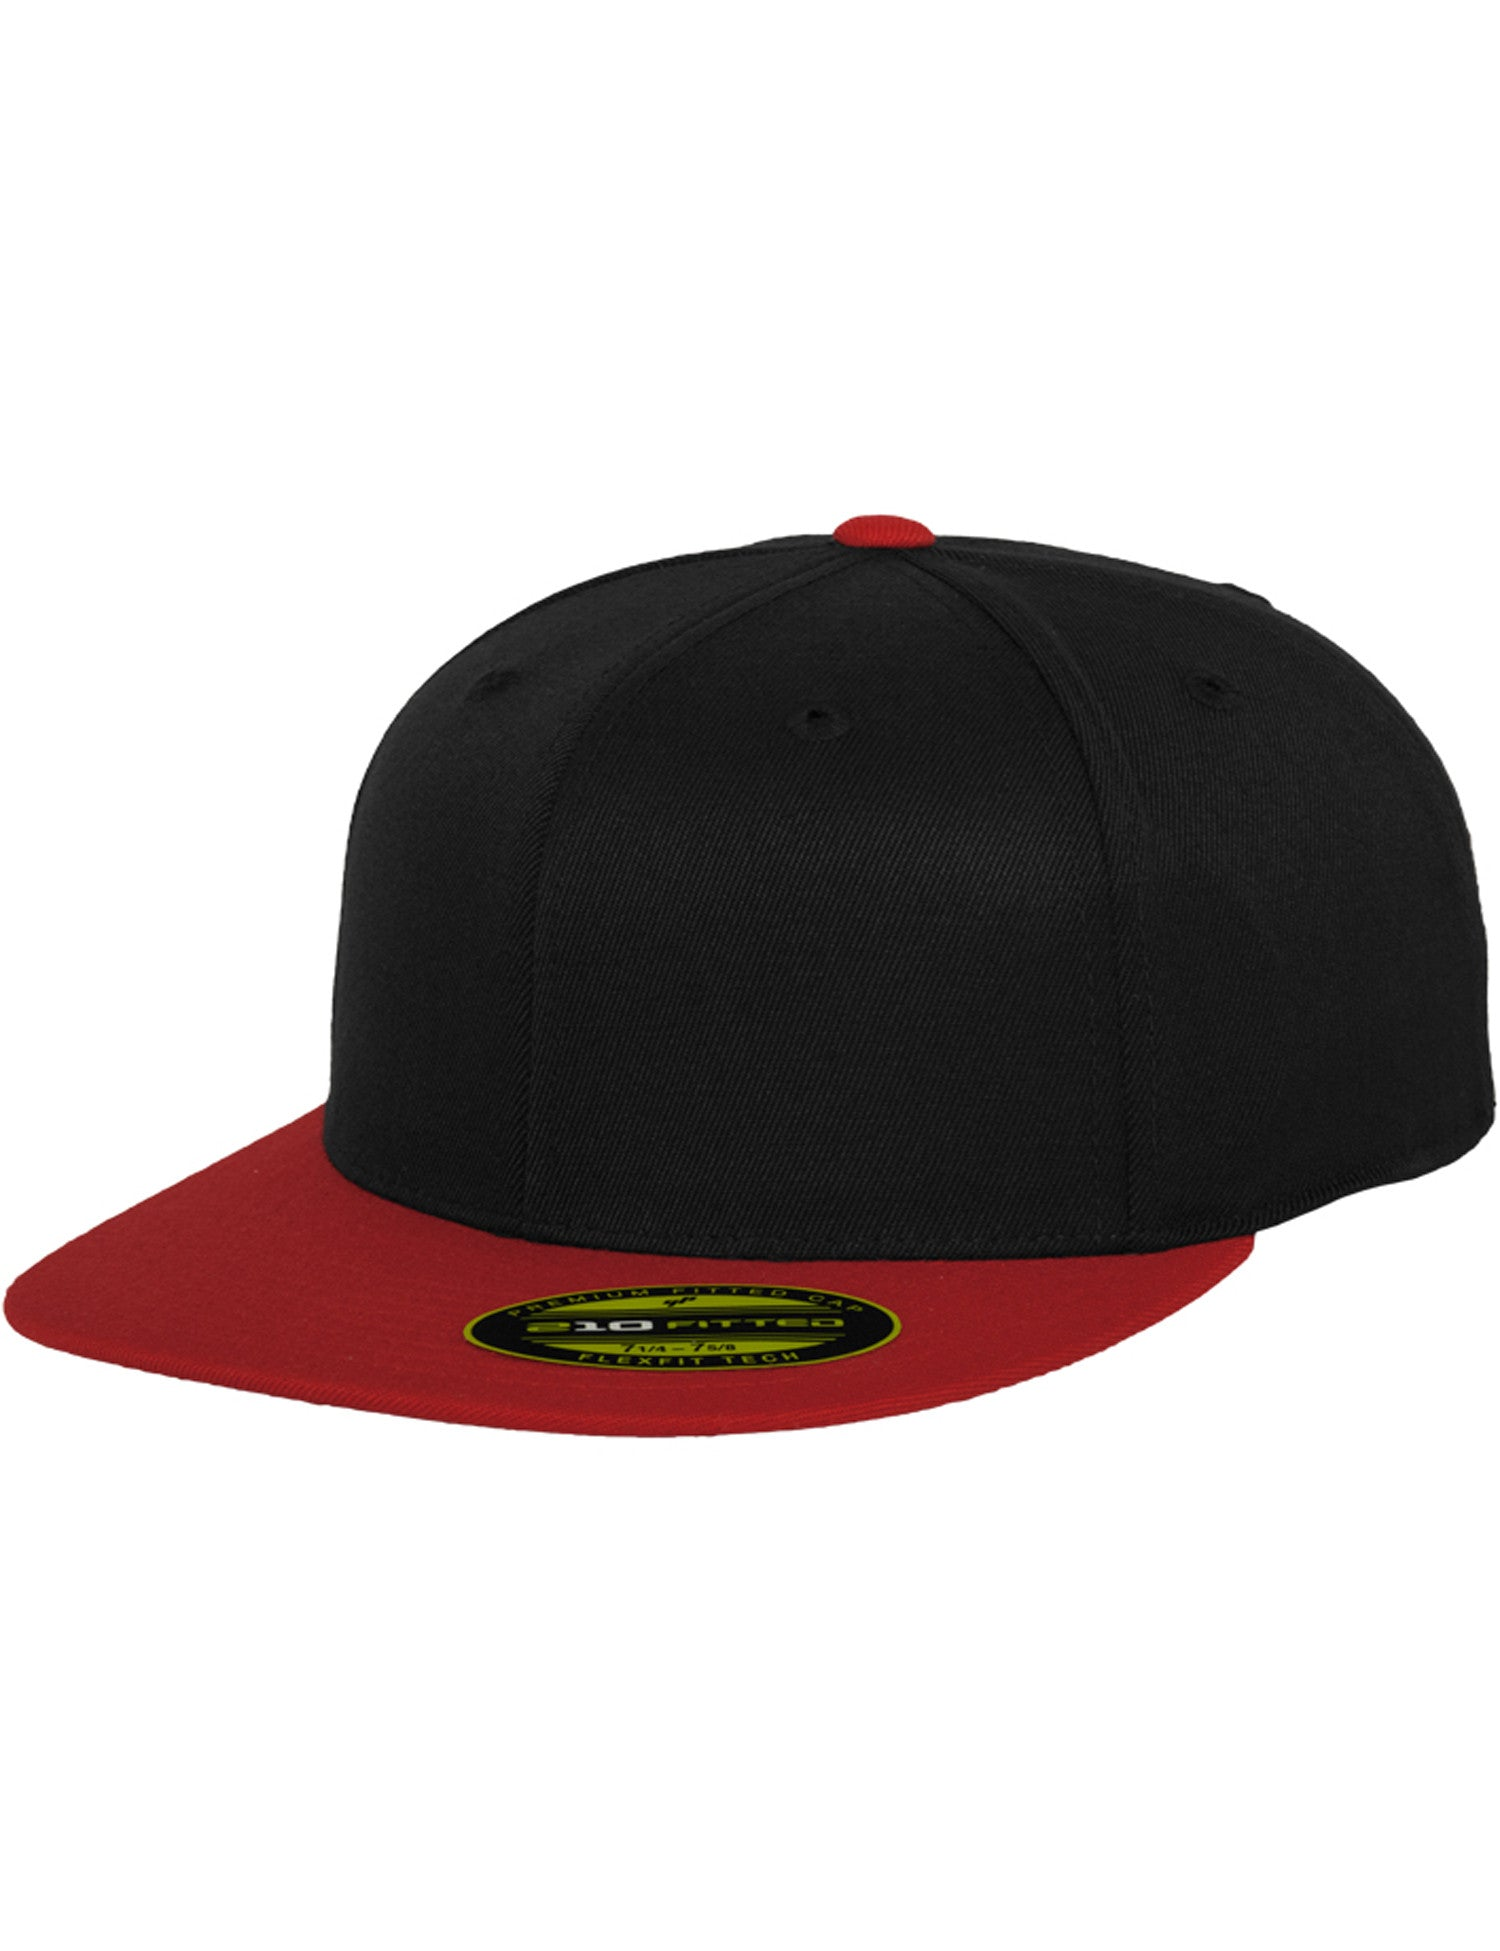 PREMIUM 210 FITTED 2-TONED CAPS Black